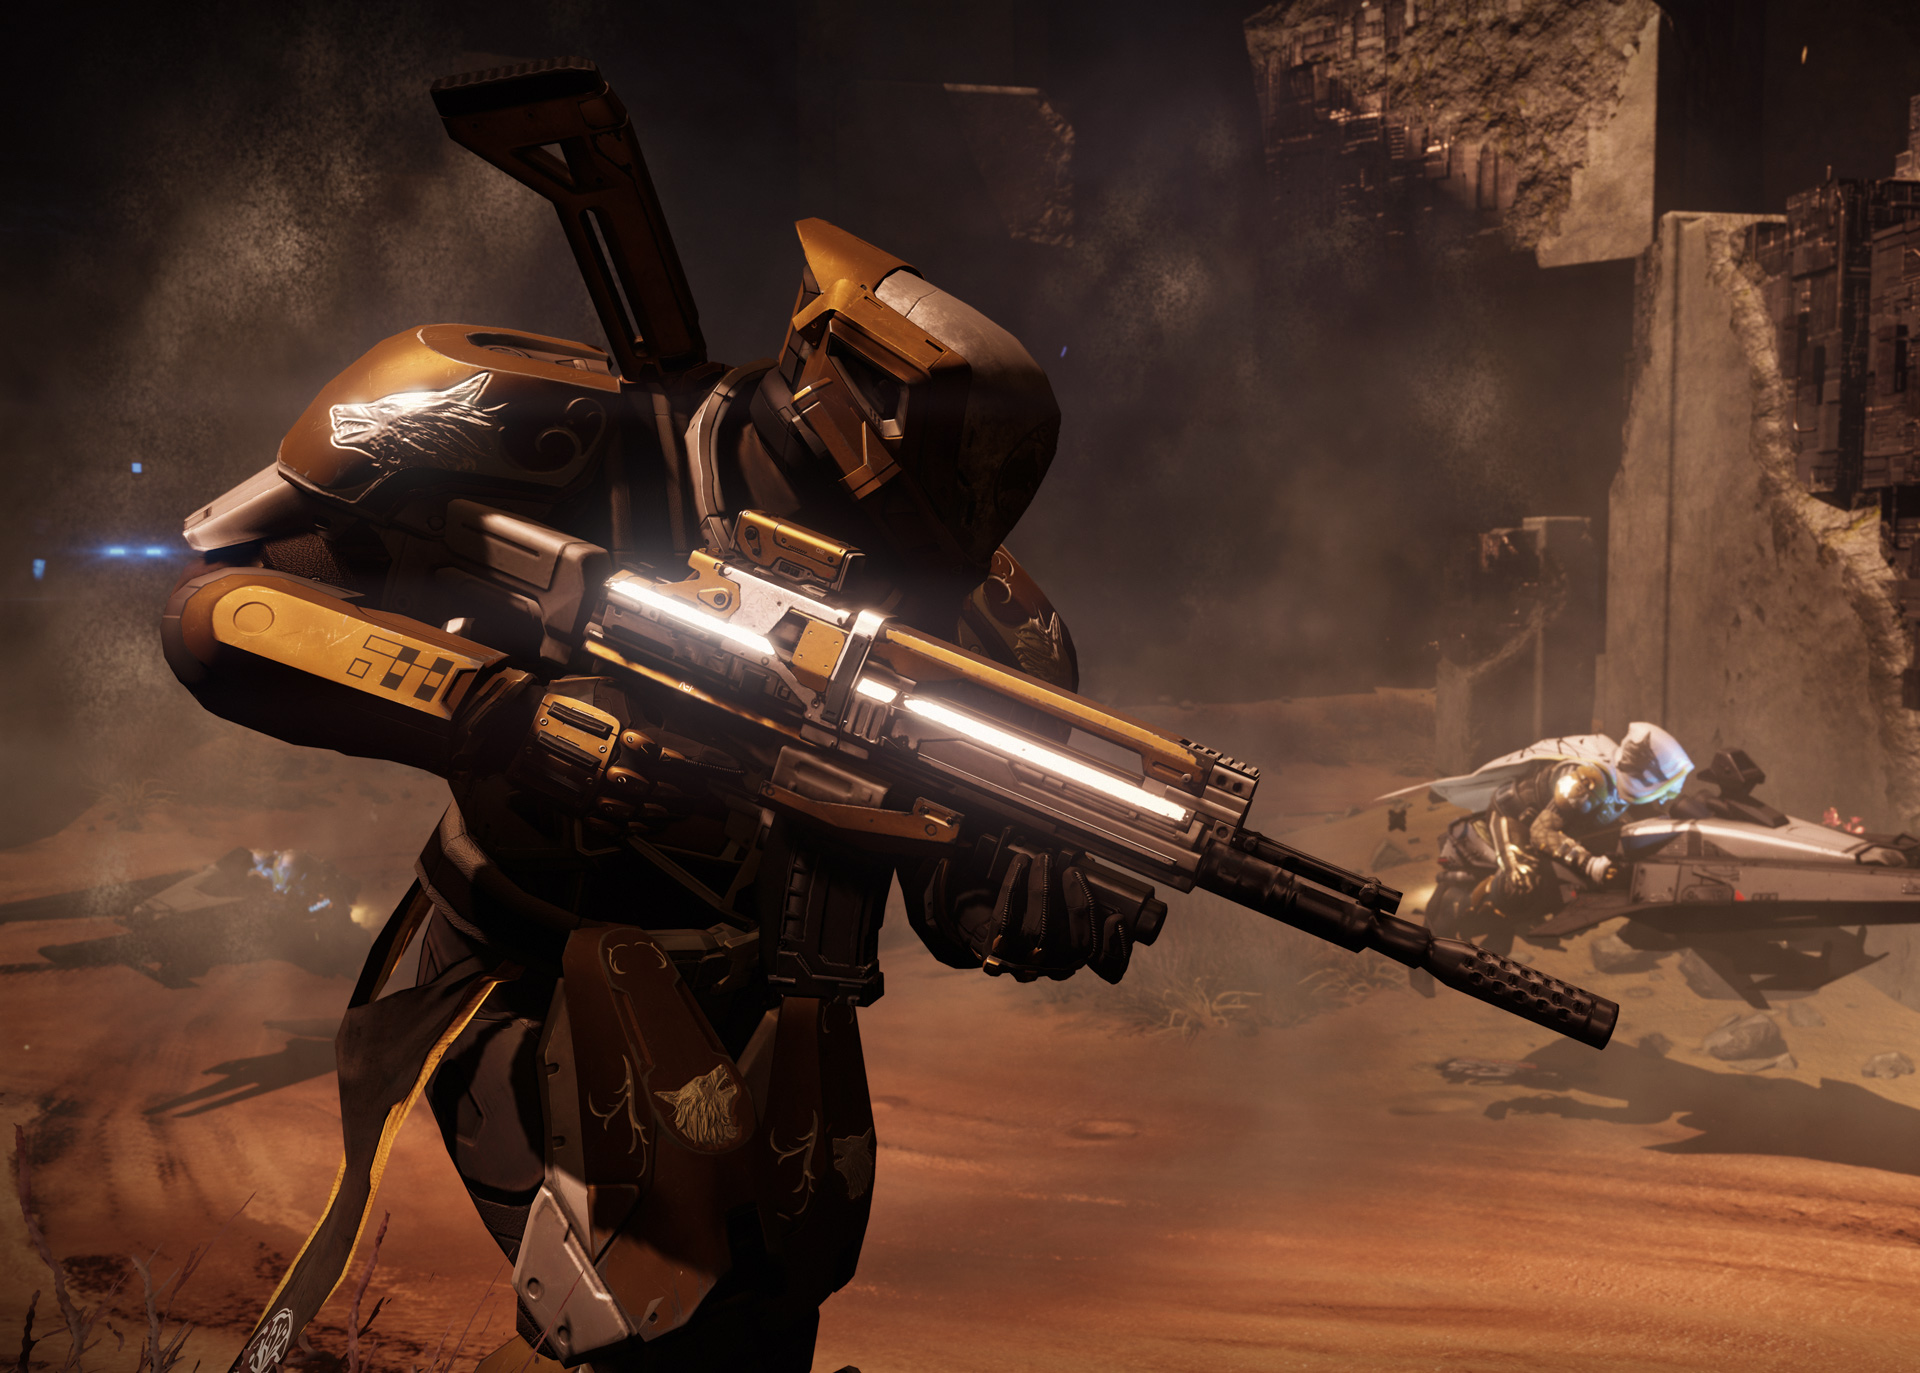 Destiny's troubled launch was the best-case scenario for Halo 5